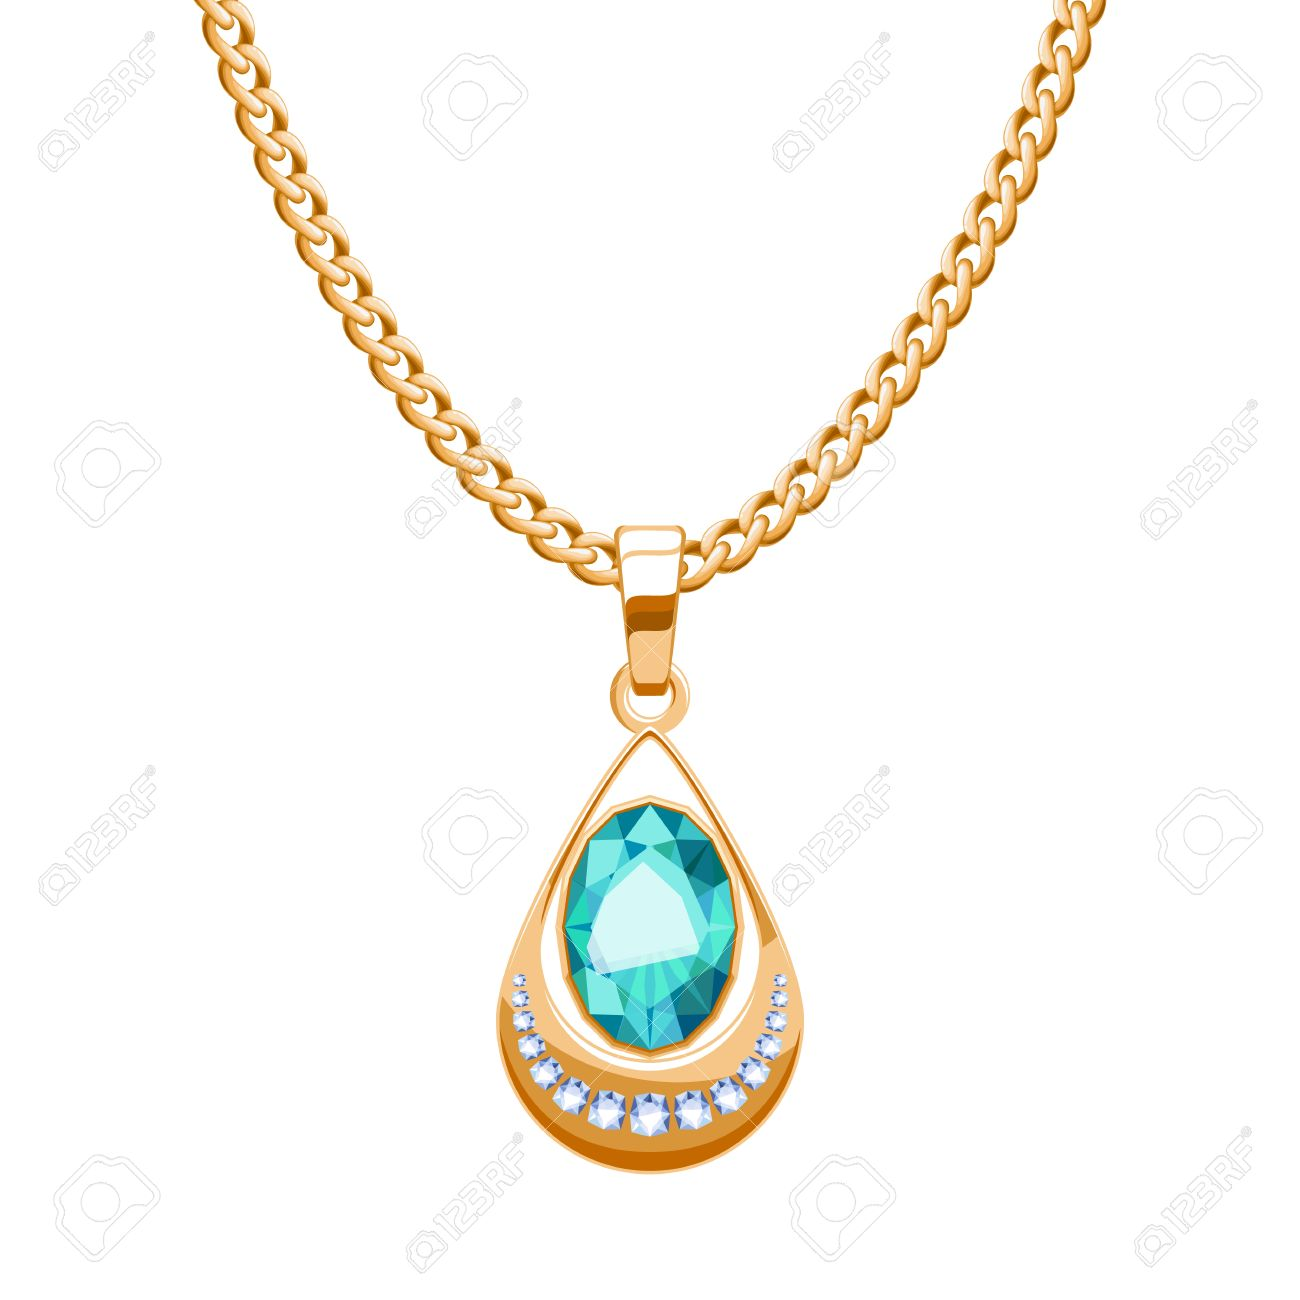 Golden chain necklace with diamonds and emerald pendant drop golden chain necklace with diamonds and emerald pendant drop shape jewelry vector illustration design aloadofball Image collections